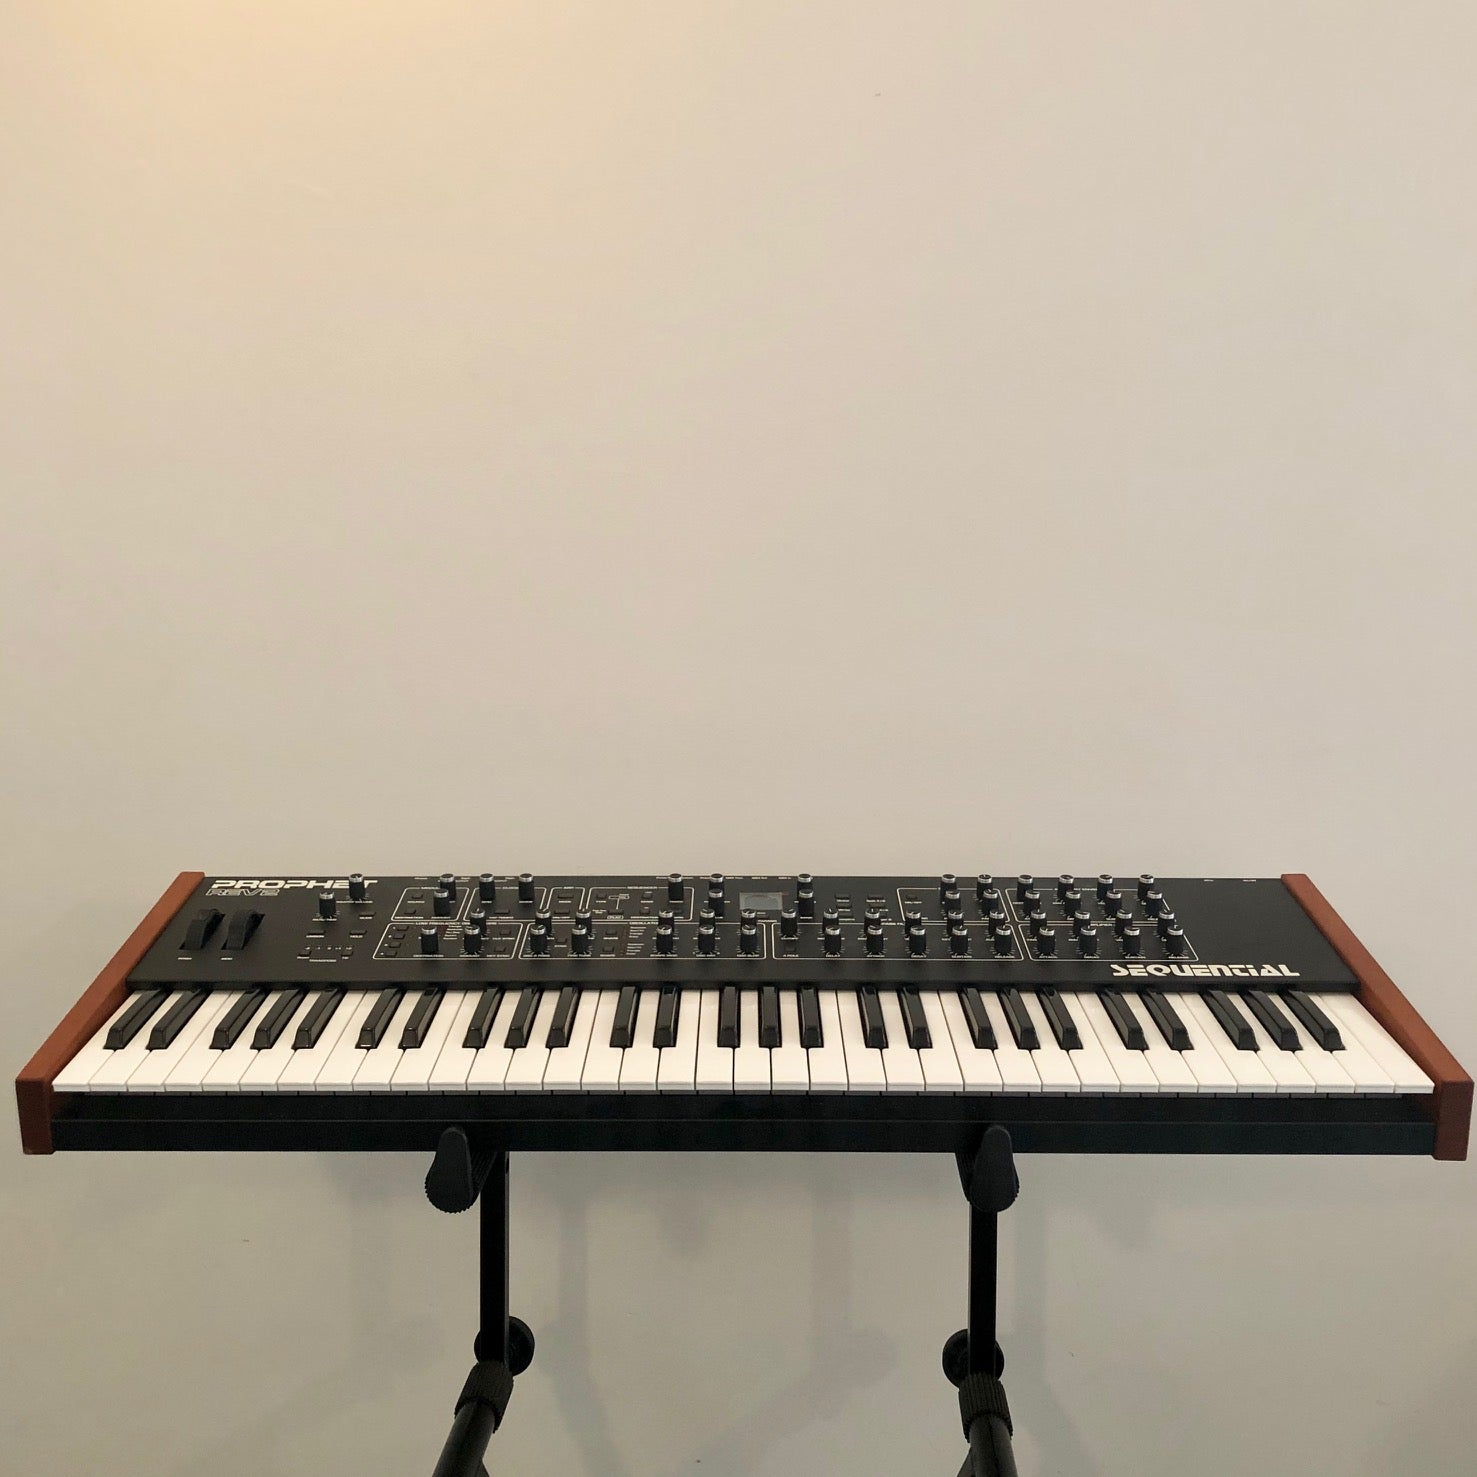 Sequential Prophet Rev2 8-Voice